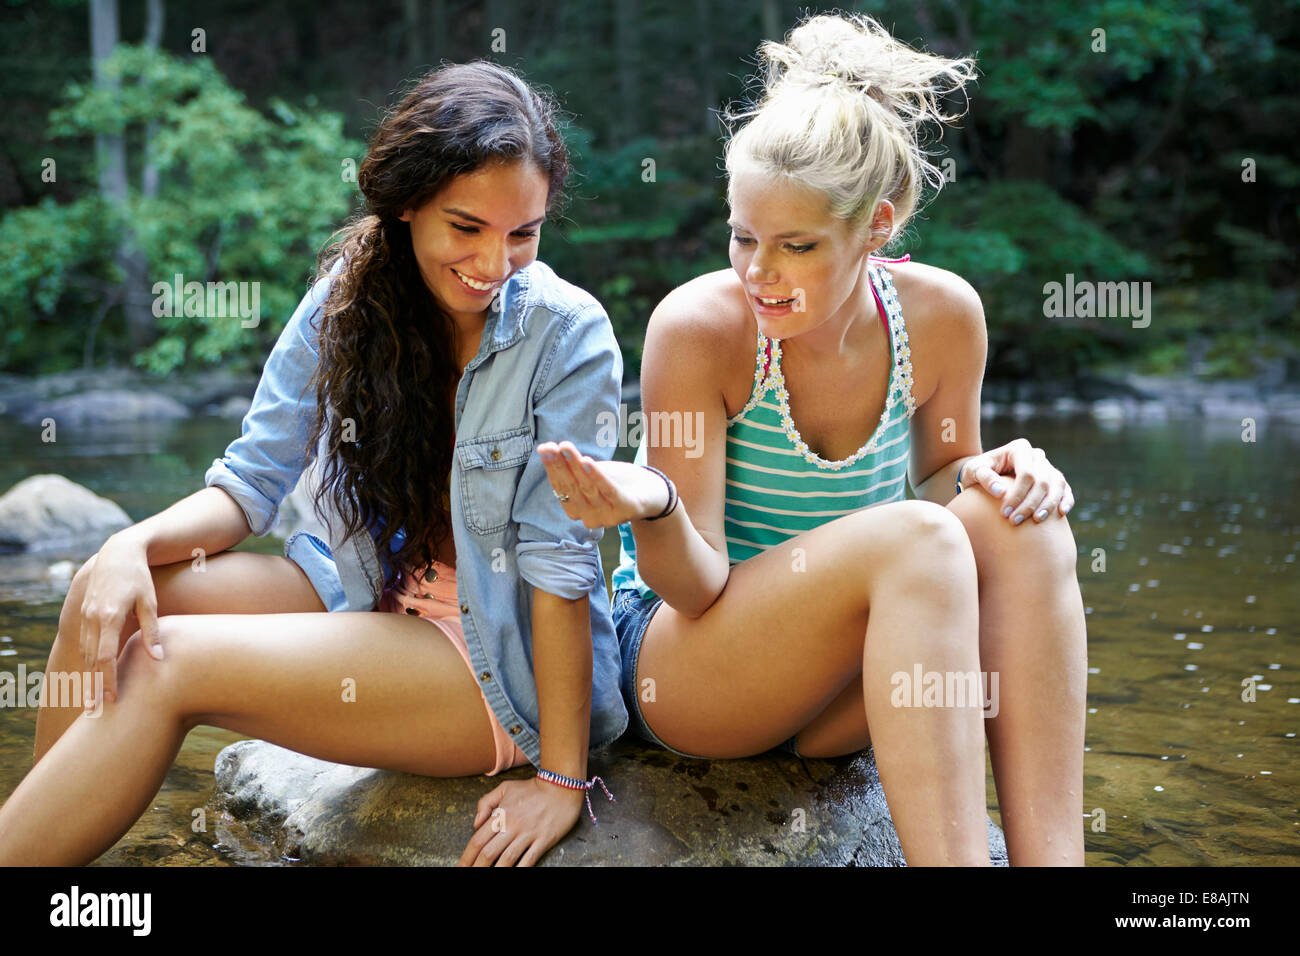 Women sitting by river in forest - Stock Image